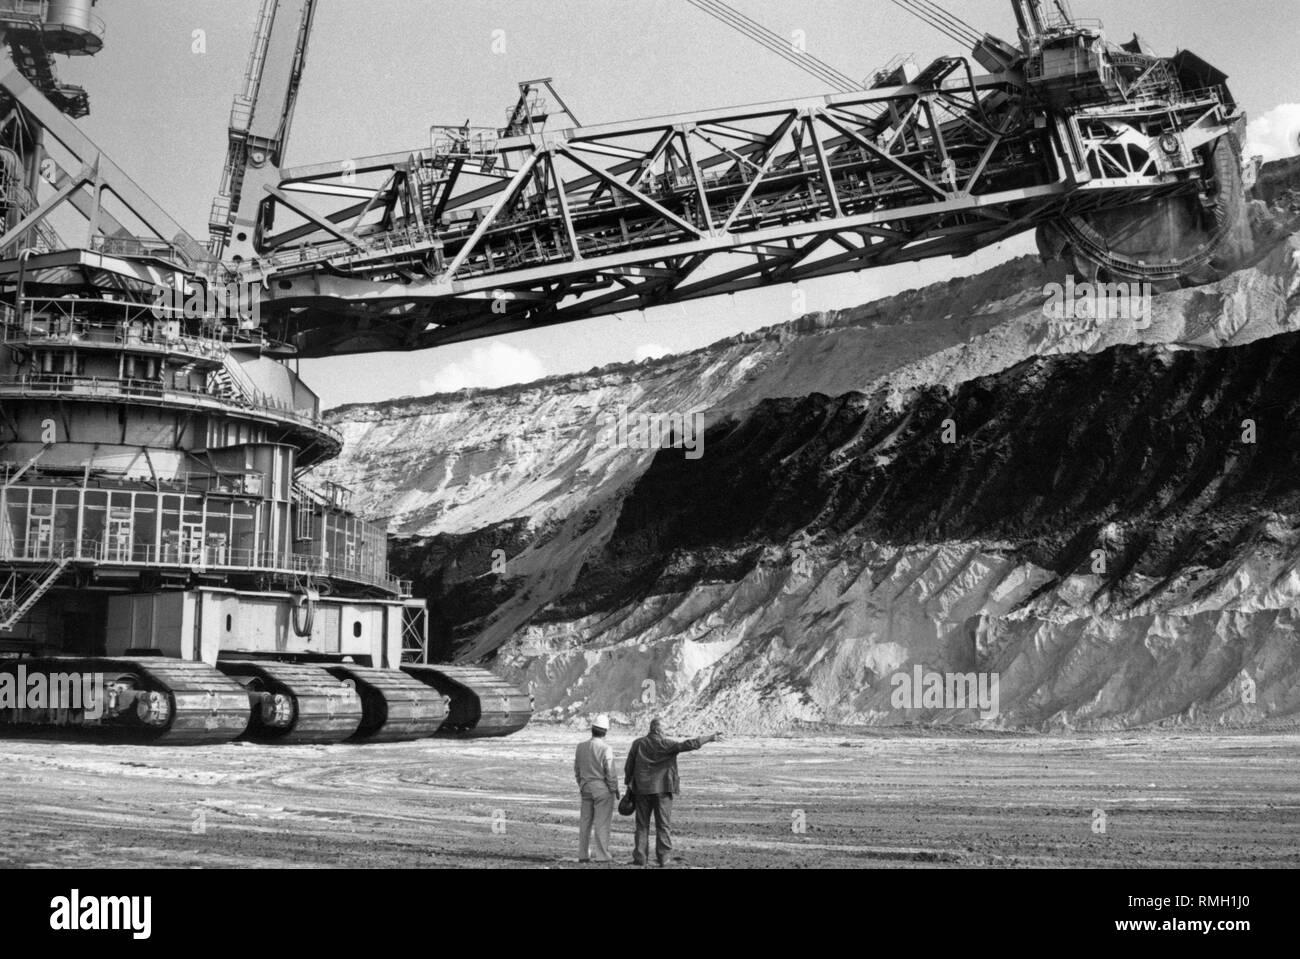 A bucket wheel excavator in the open pit mine at Bergheim near Juelich. In the foreground are two workers. - Stock Image